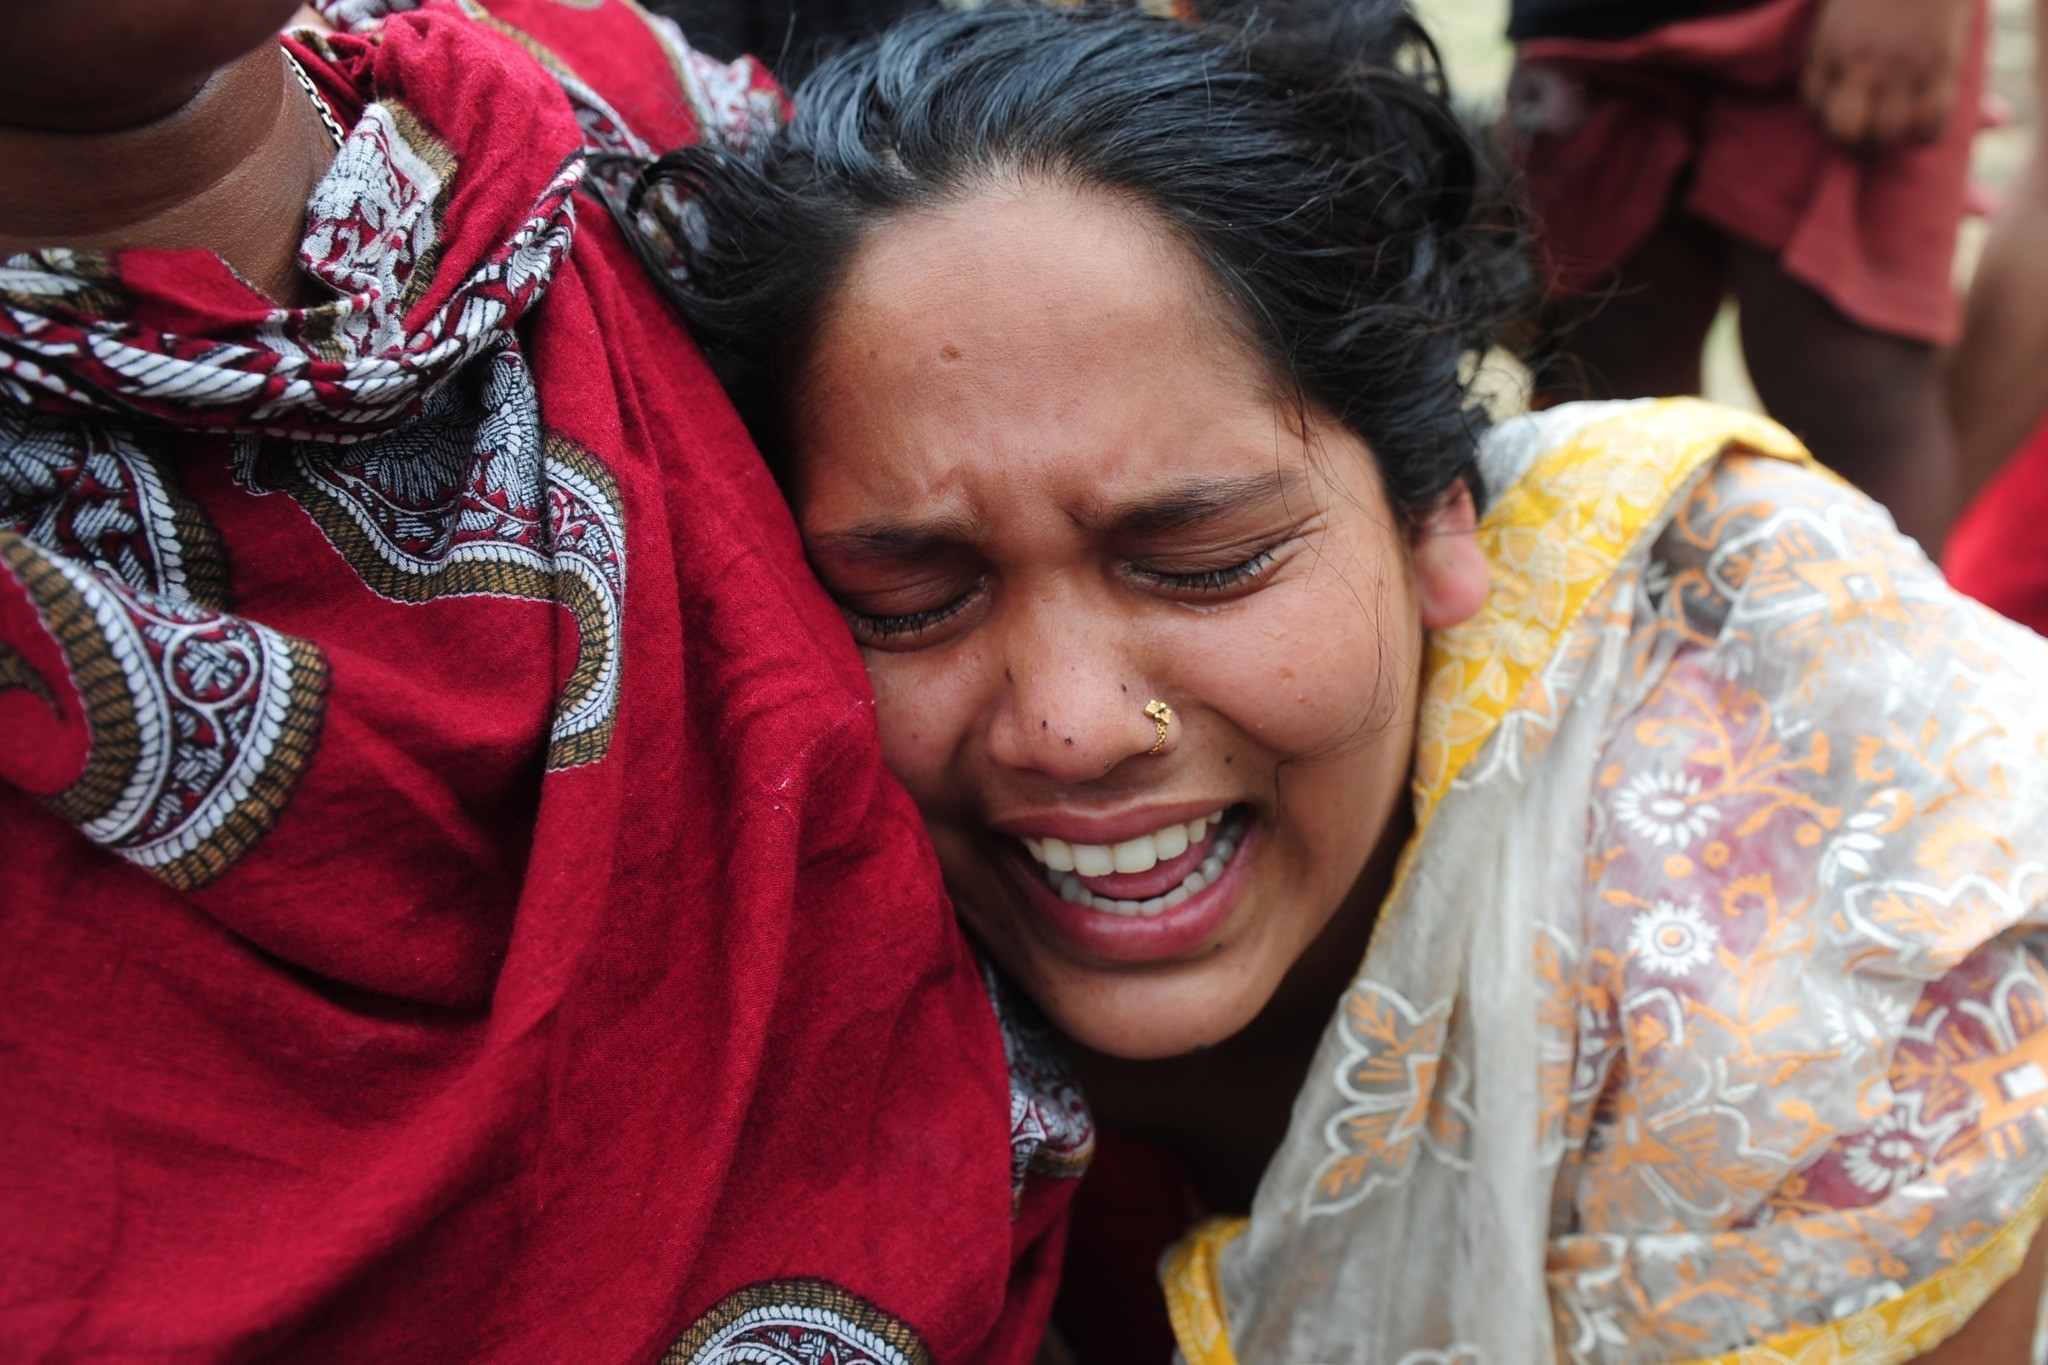 Bangladesh building collapse death toll tops 1,000 - Building collapse aftermath